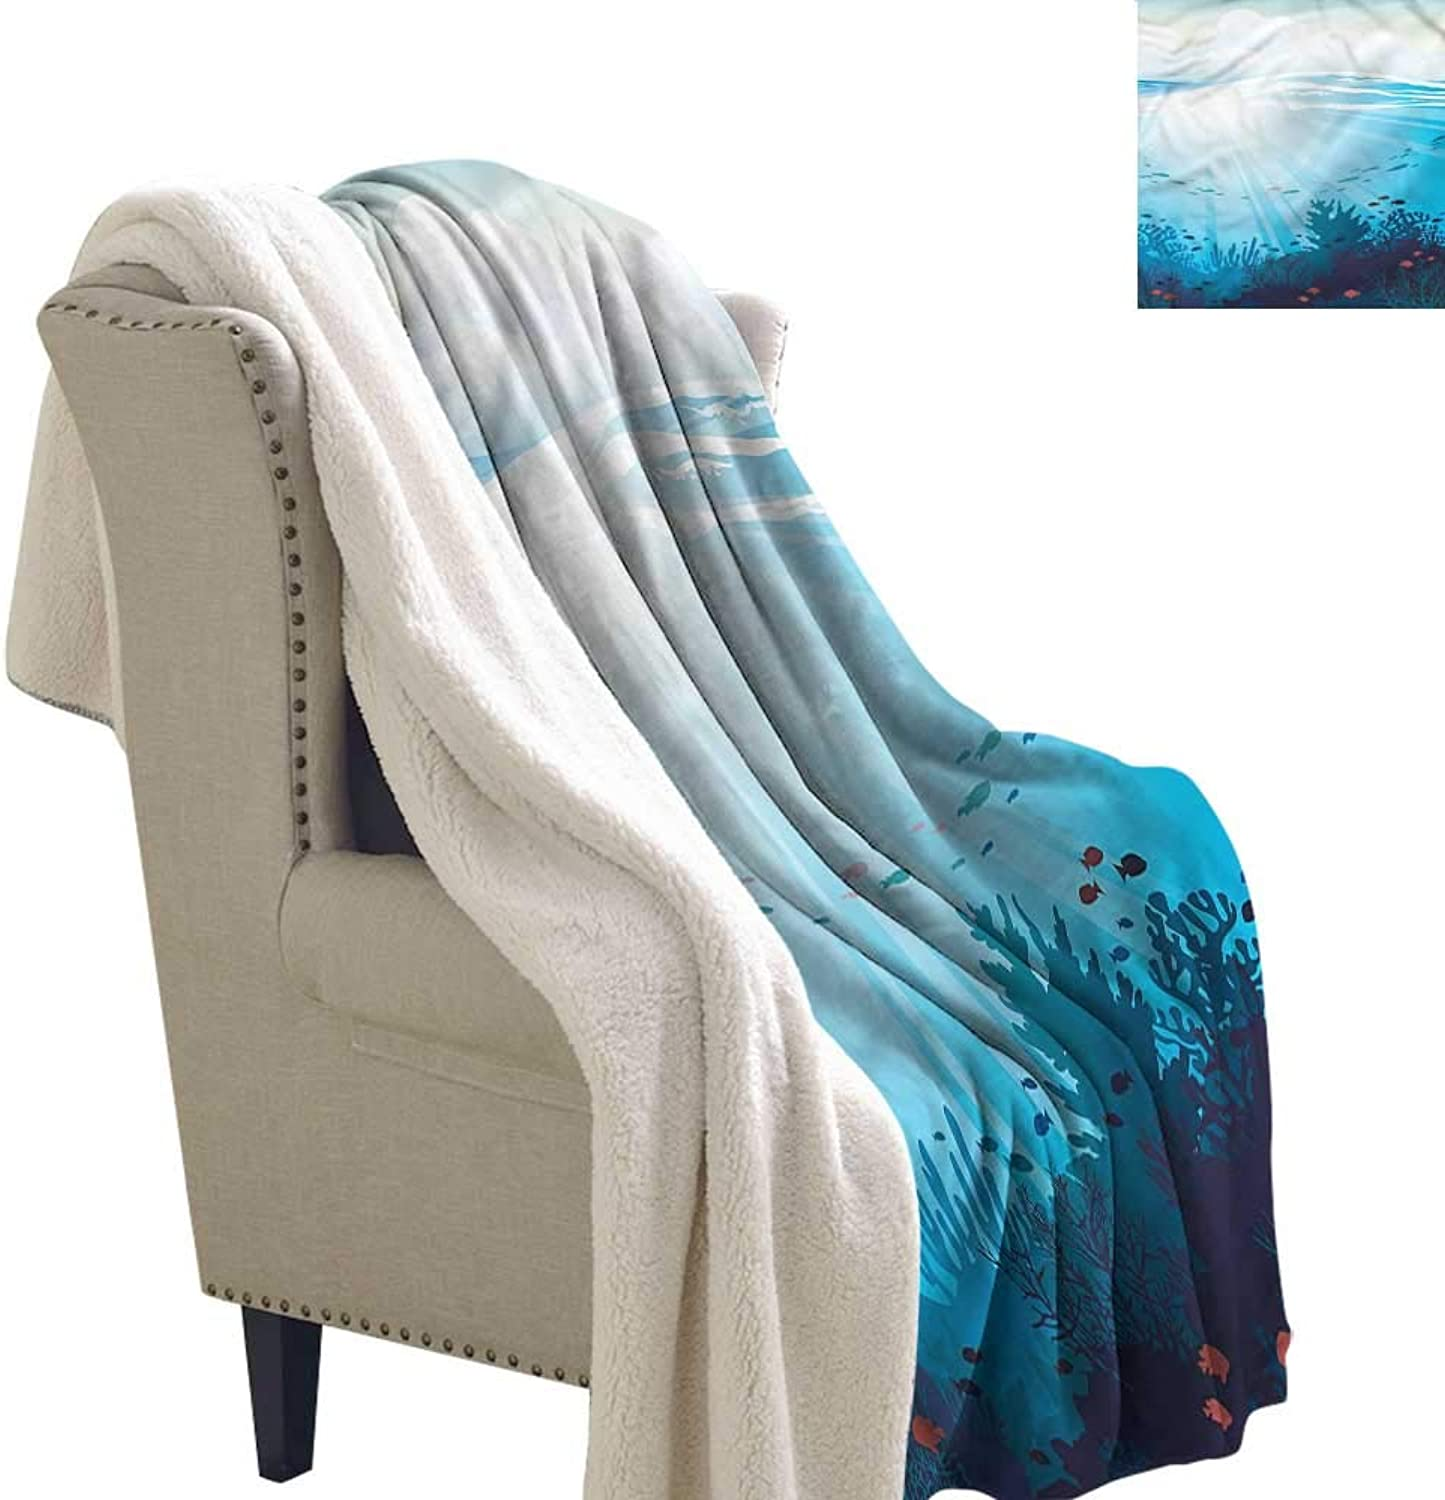 Cartoon Flannel Bed Blankets Fish Aquarium Coral Reefs for Bed, Couch, Sofa, Chair, 60x47 Inch